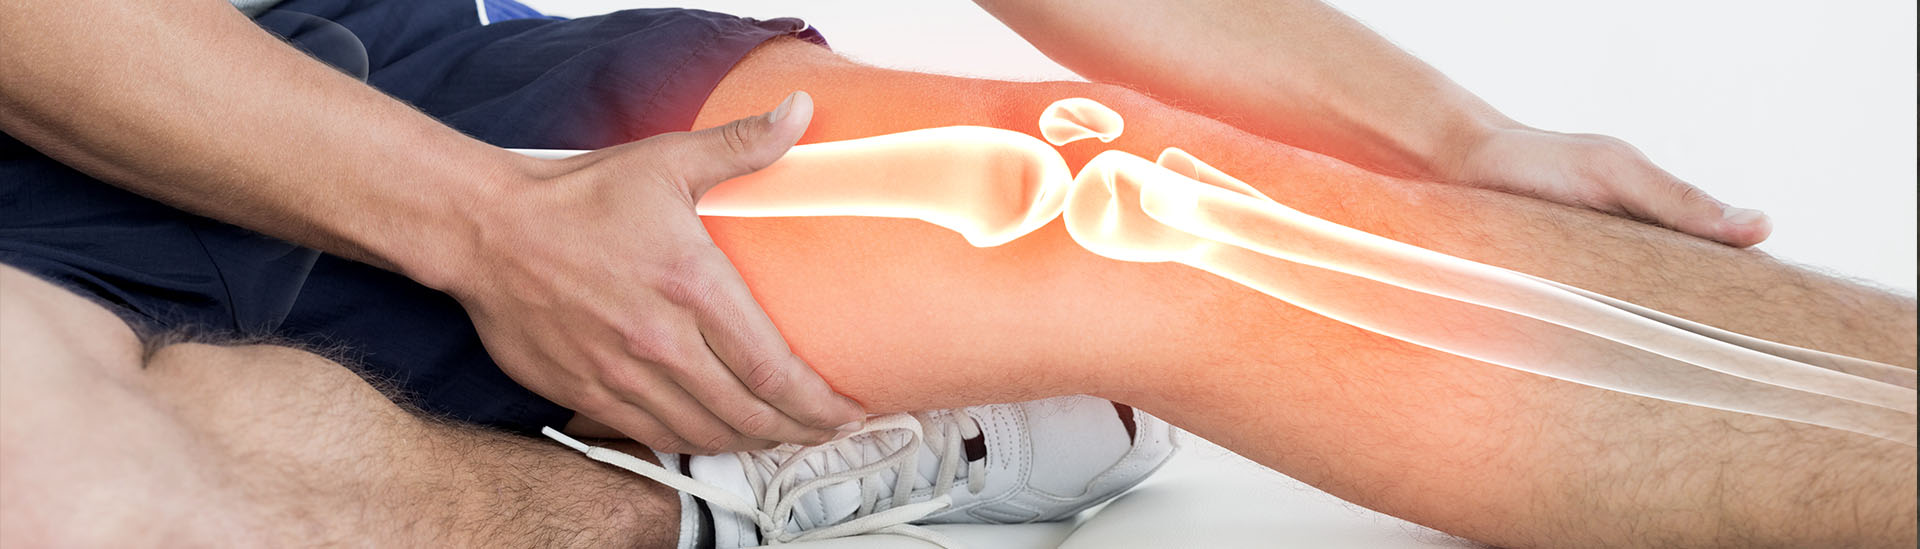 Treating injuries with Musculoskeletal Physiotherapy